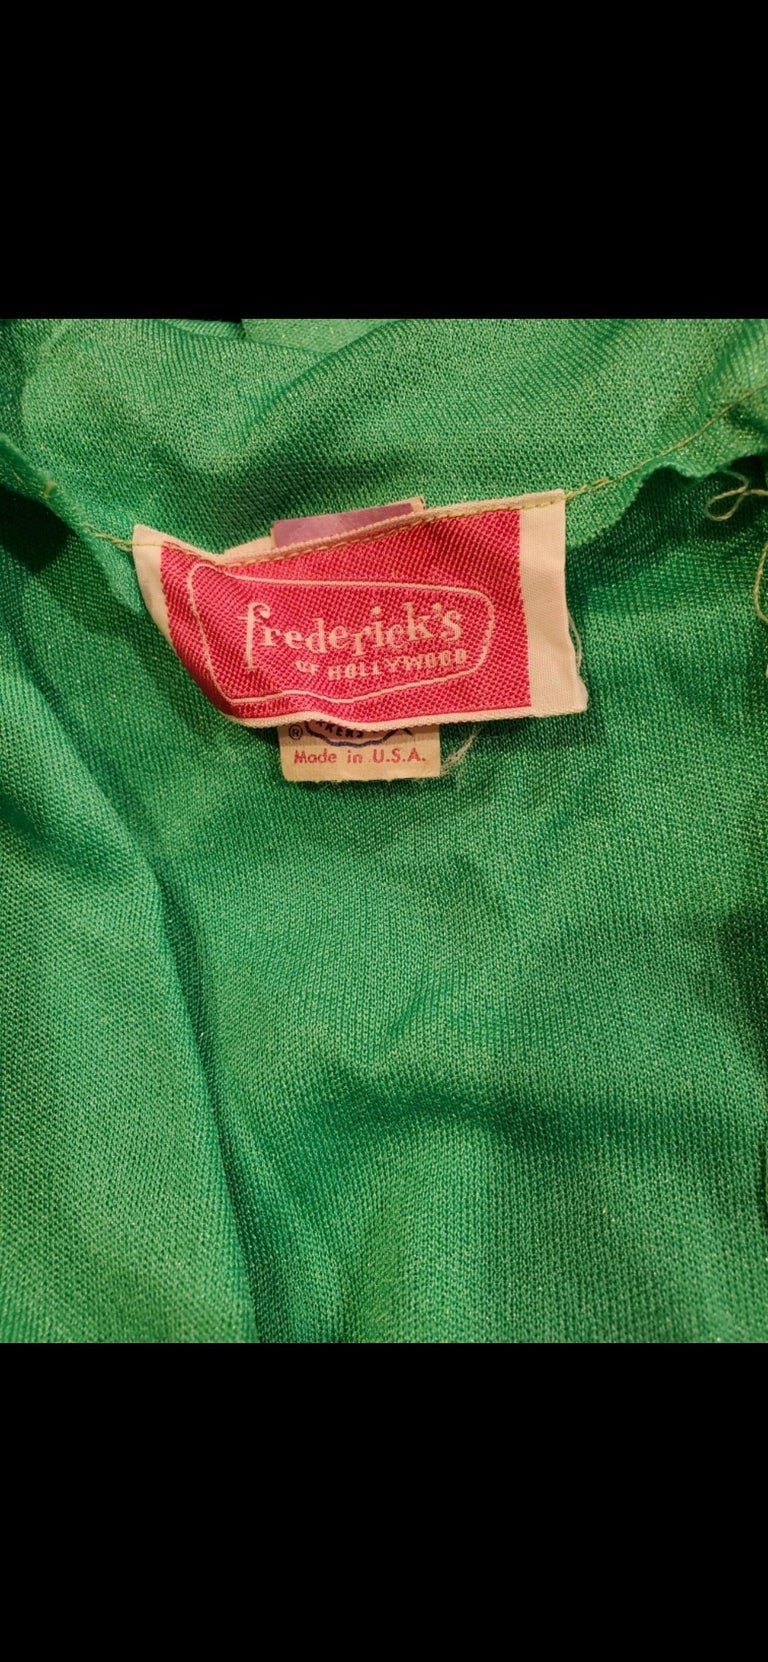 1970s Fredrick's of Hollywood Kelly Green Vintage Jersey 70s Maxi Dress In Excellent Condition For Sale In Chicago, IL